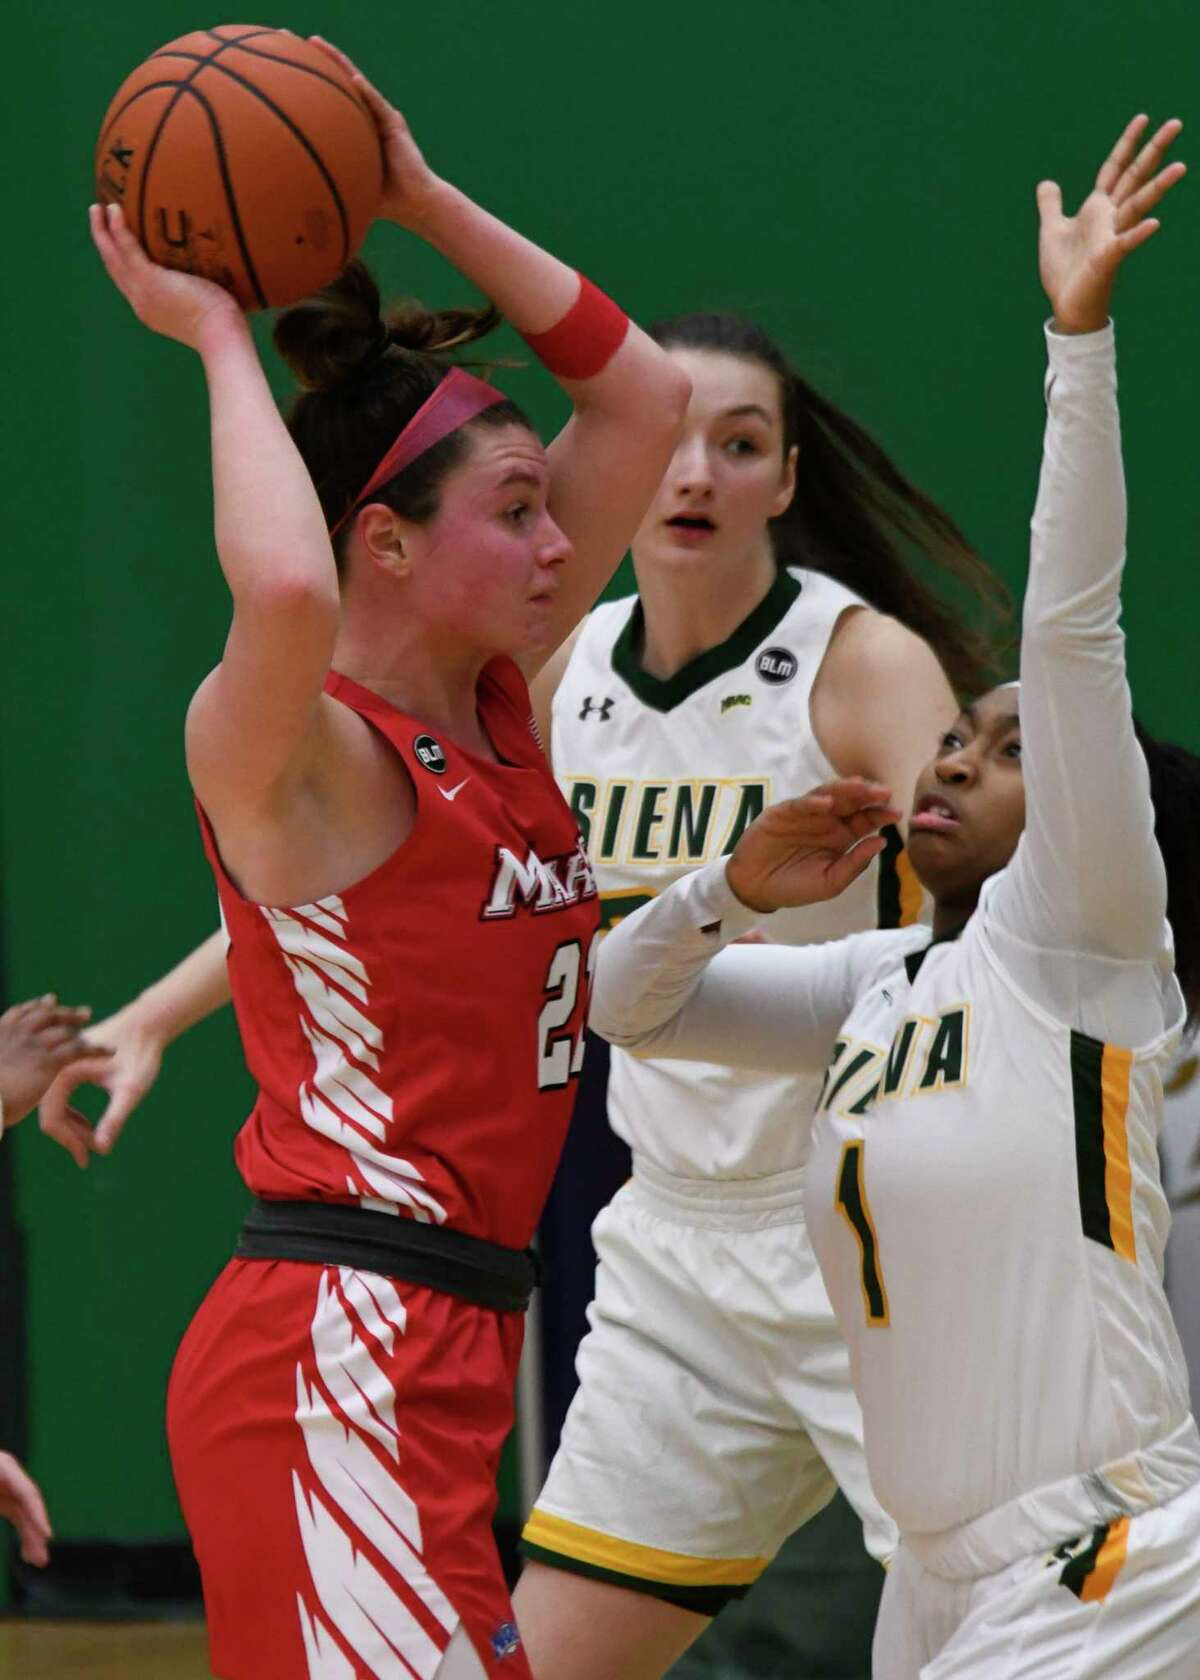 Siena's Ahniysha Jackson guards Marist's Willow Duffell during a game on Saturday, Feb. 13, 2021, in Loudonville, N.Y.